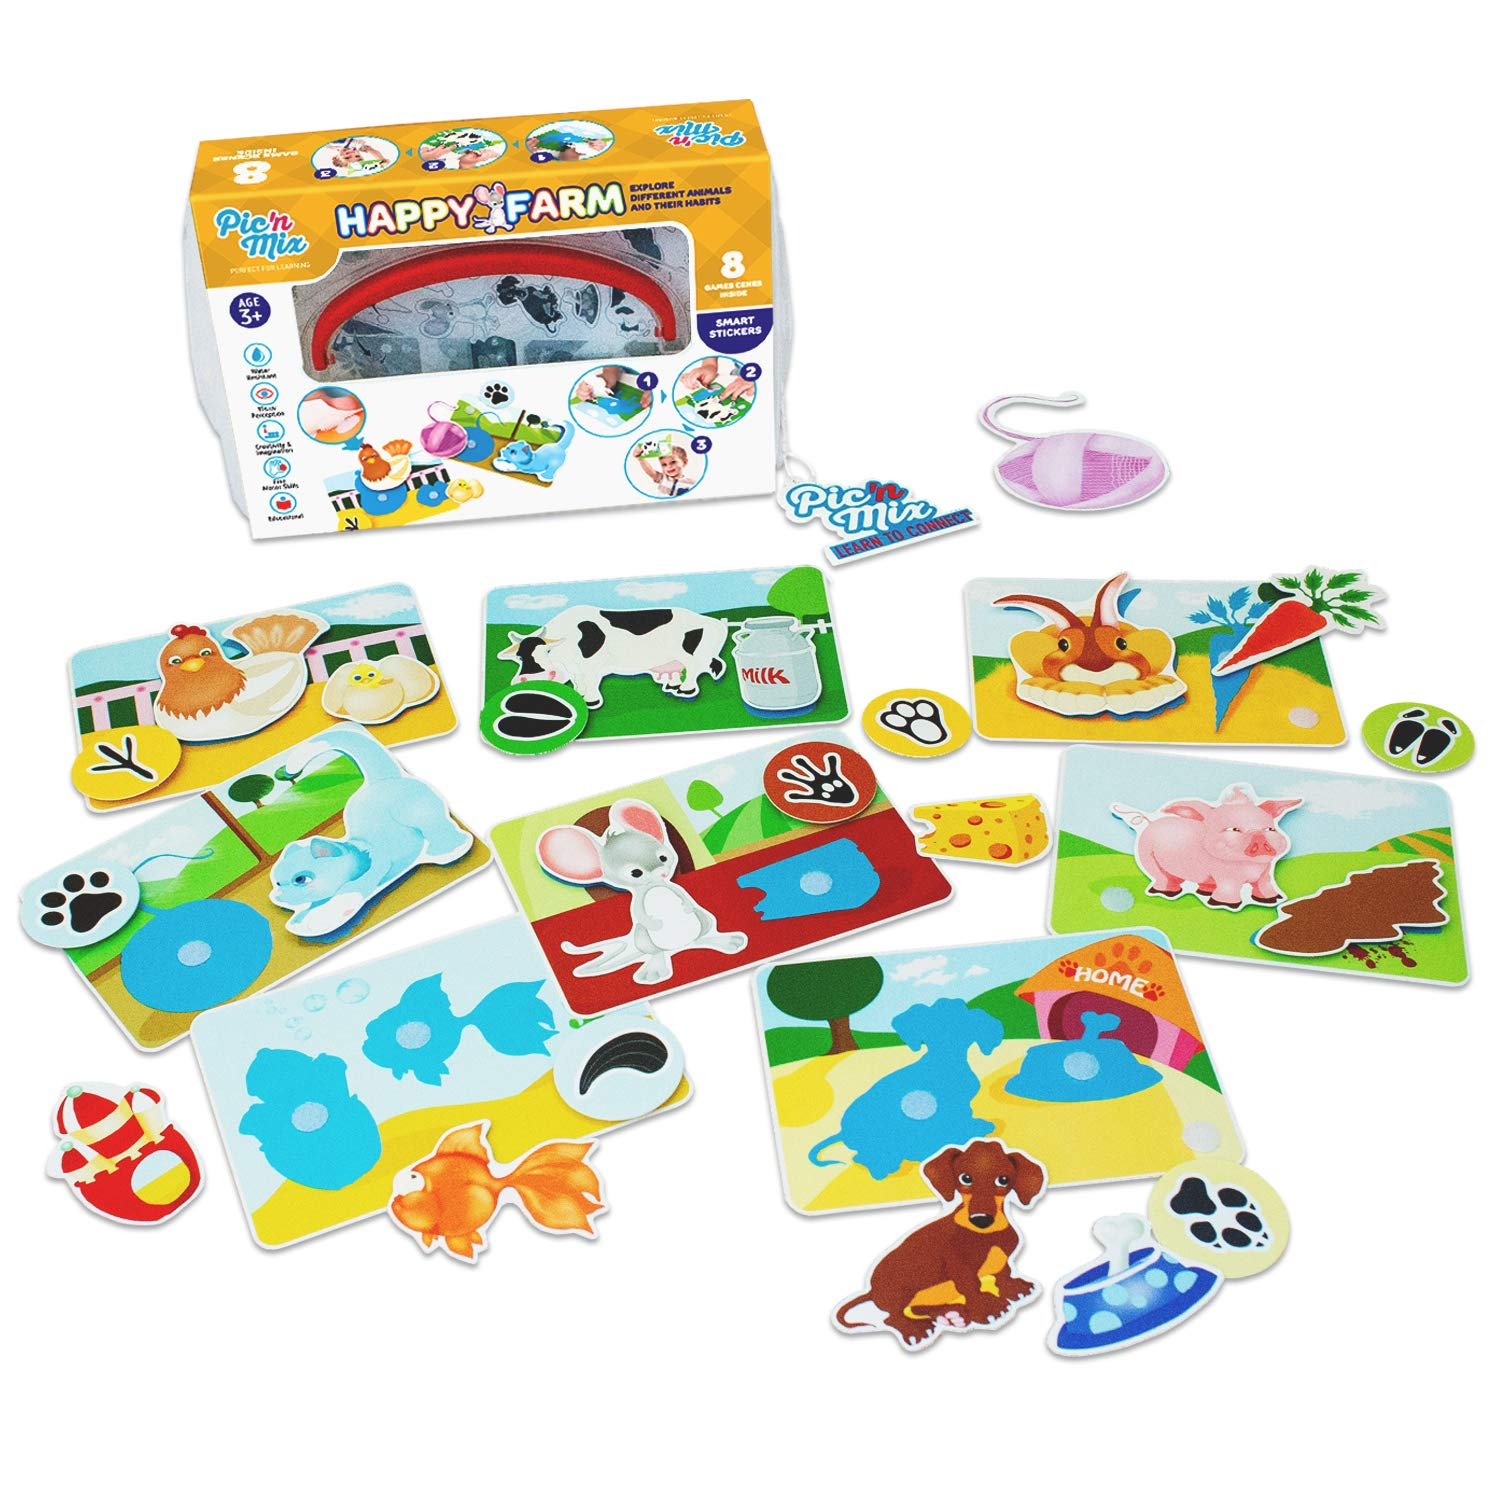 Happy Farm Game for Toddlers and Preschool Kids | Learning Sorting and Counting - Therapy Fine Motor Skills Activity. For 3 years old. Eco-Friendly made of durable plastic | Educational Puzzle Toy. by Picnmix